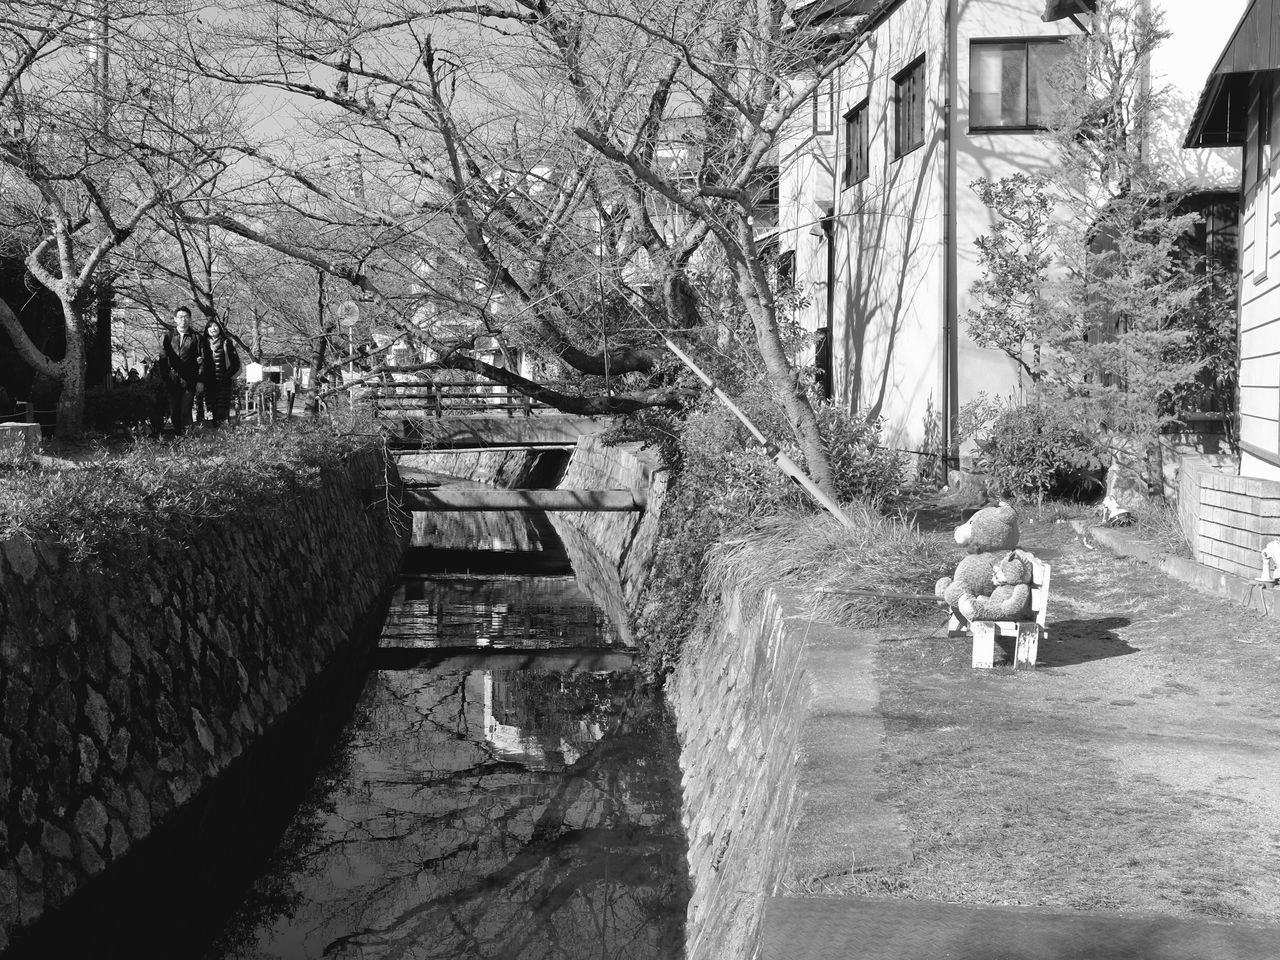 Bears looking at people walking on philosopher's path in Kyoto, Japan. Japan Kyoto Philosopher's Way Bear Street Photography X100t X100gang Fujifilm Fujifilm_xseries Black And White (null)Monochrome Photography